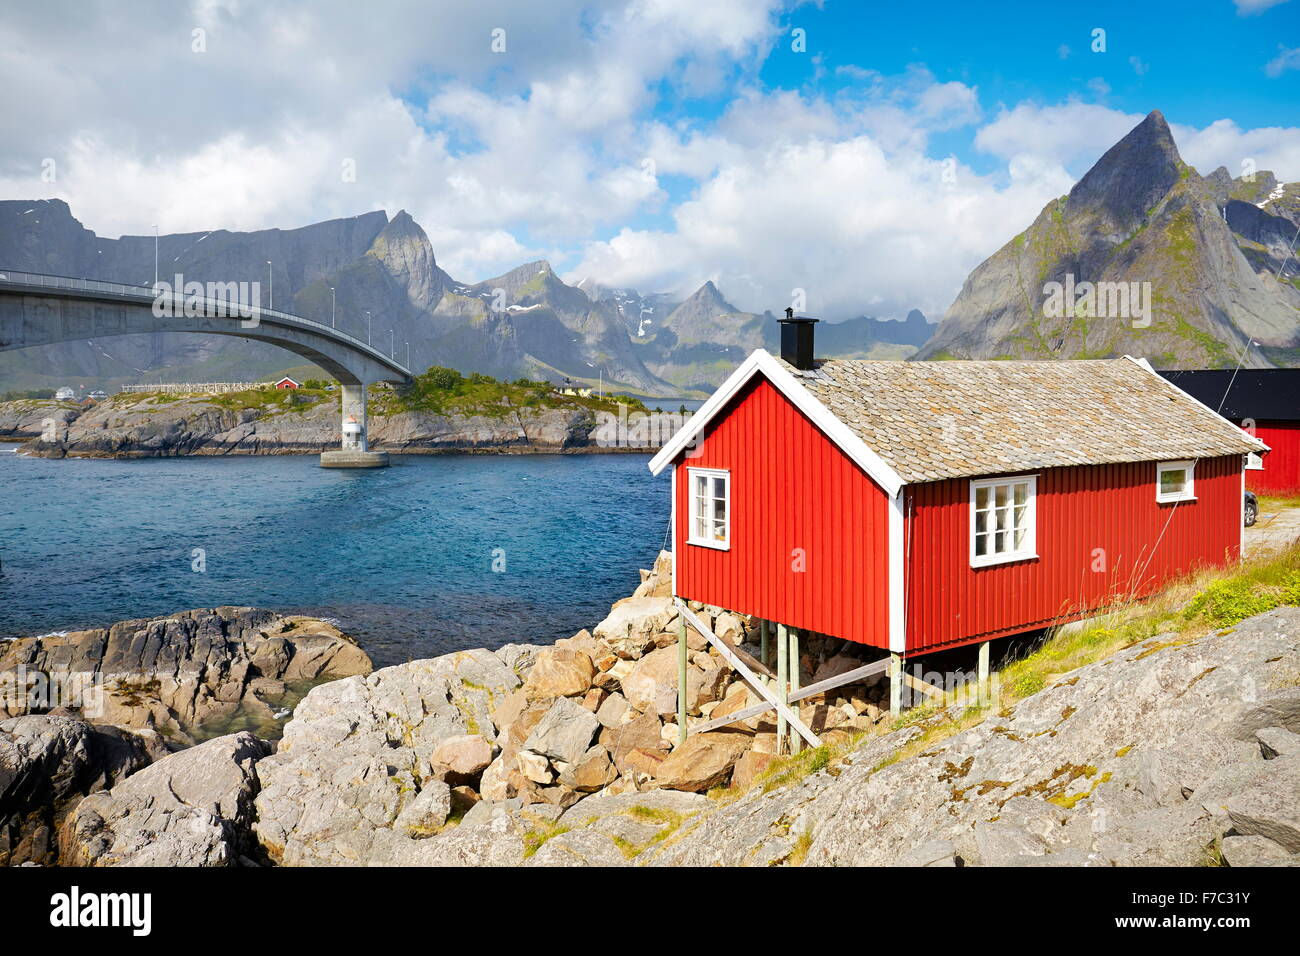 Traditional red hut rorbu house on Lofoten Islands, Norway - Stock Image